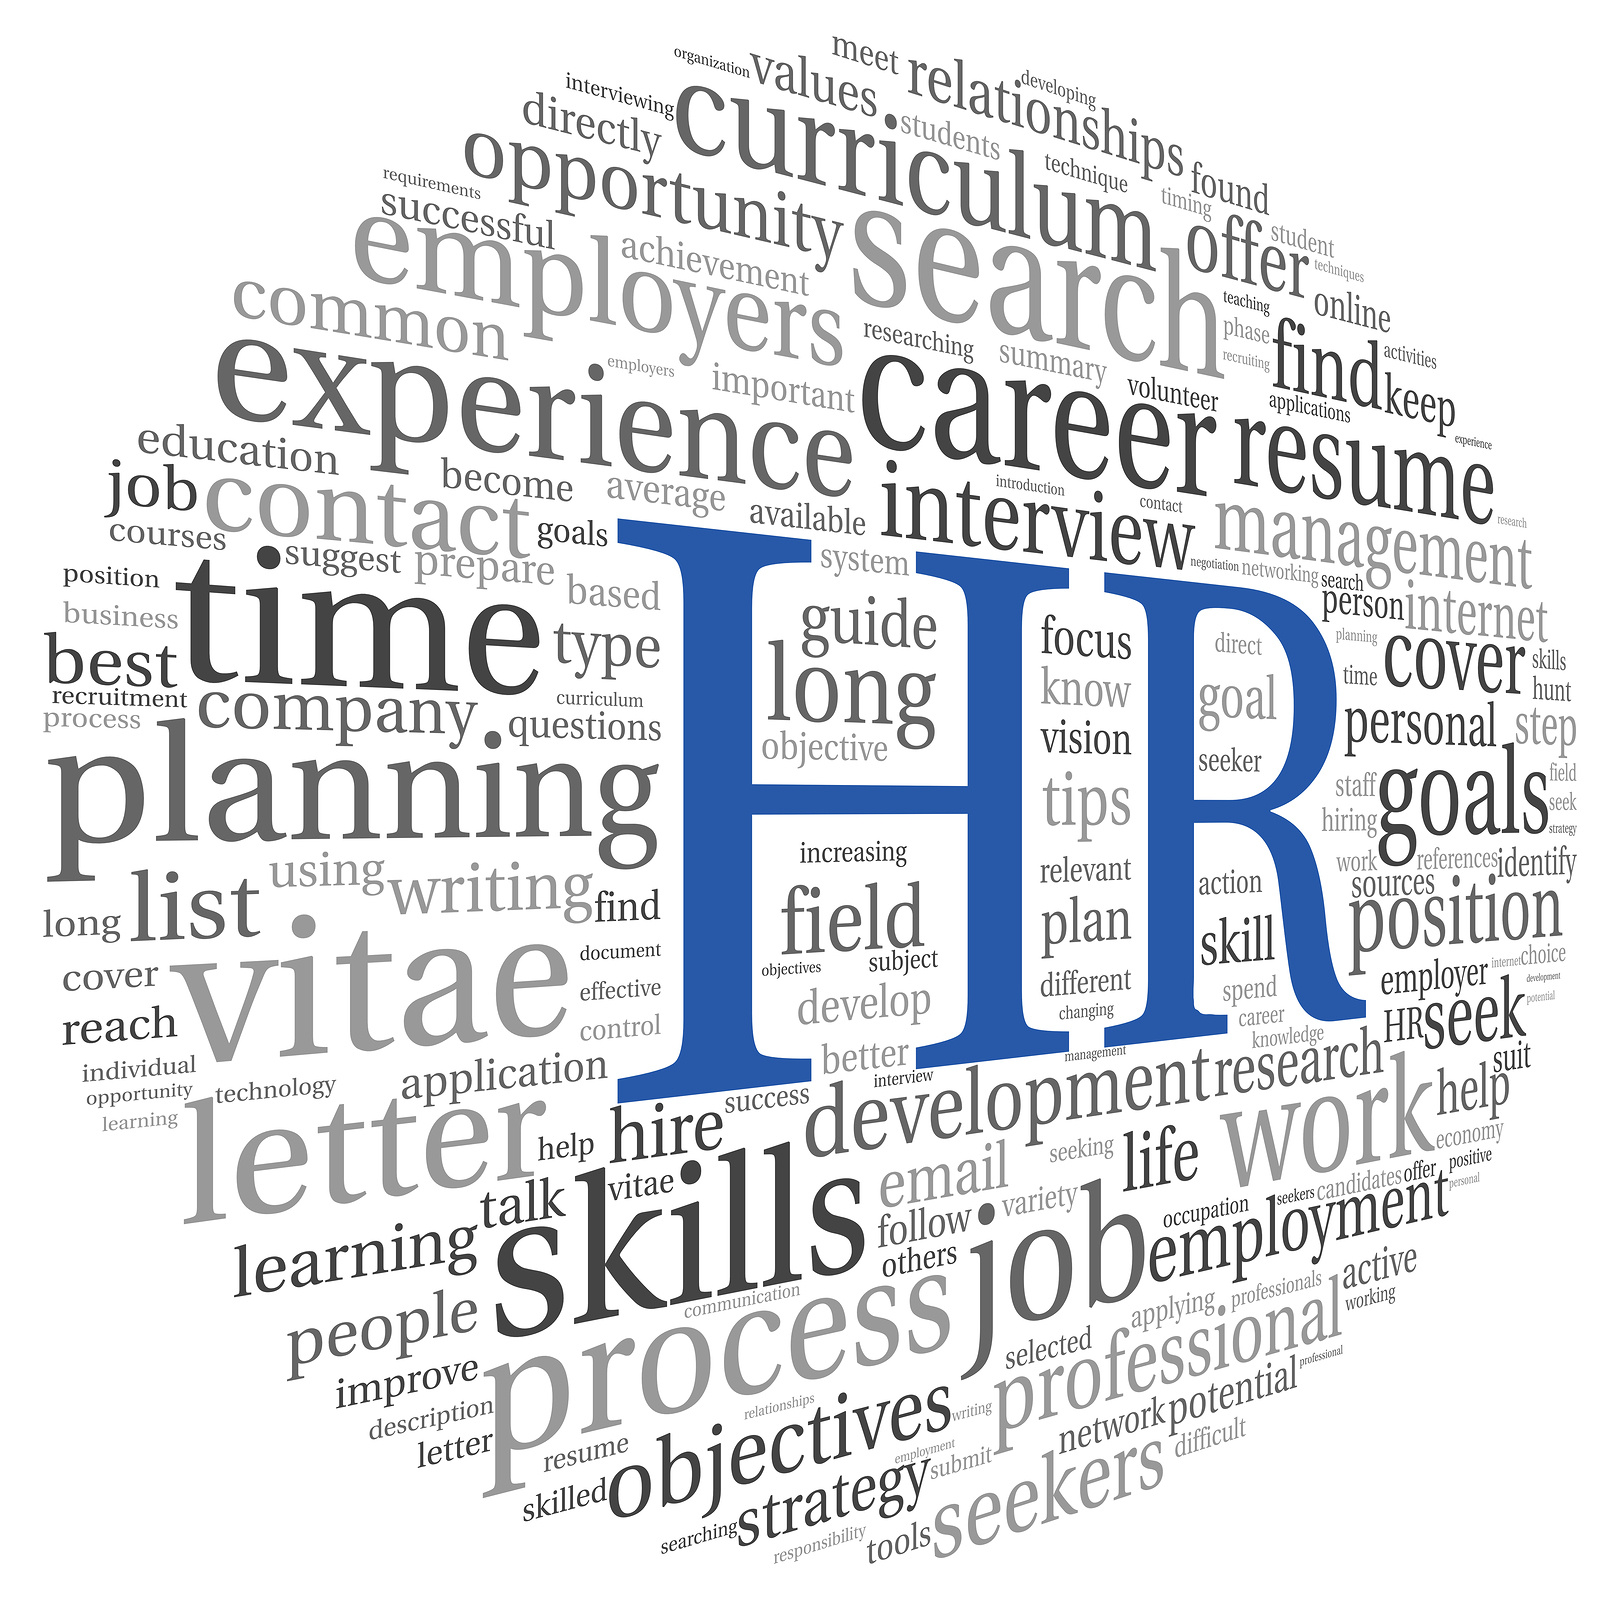 51 Common Hr Interview Questions